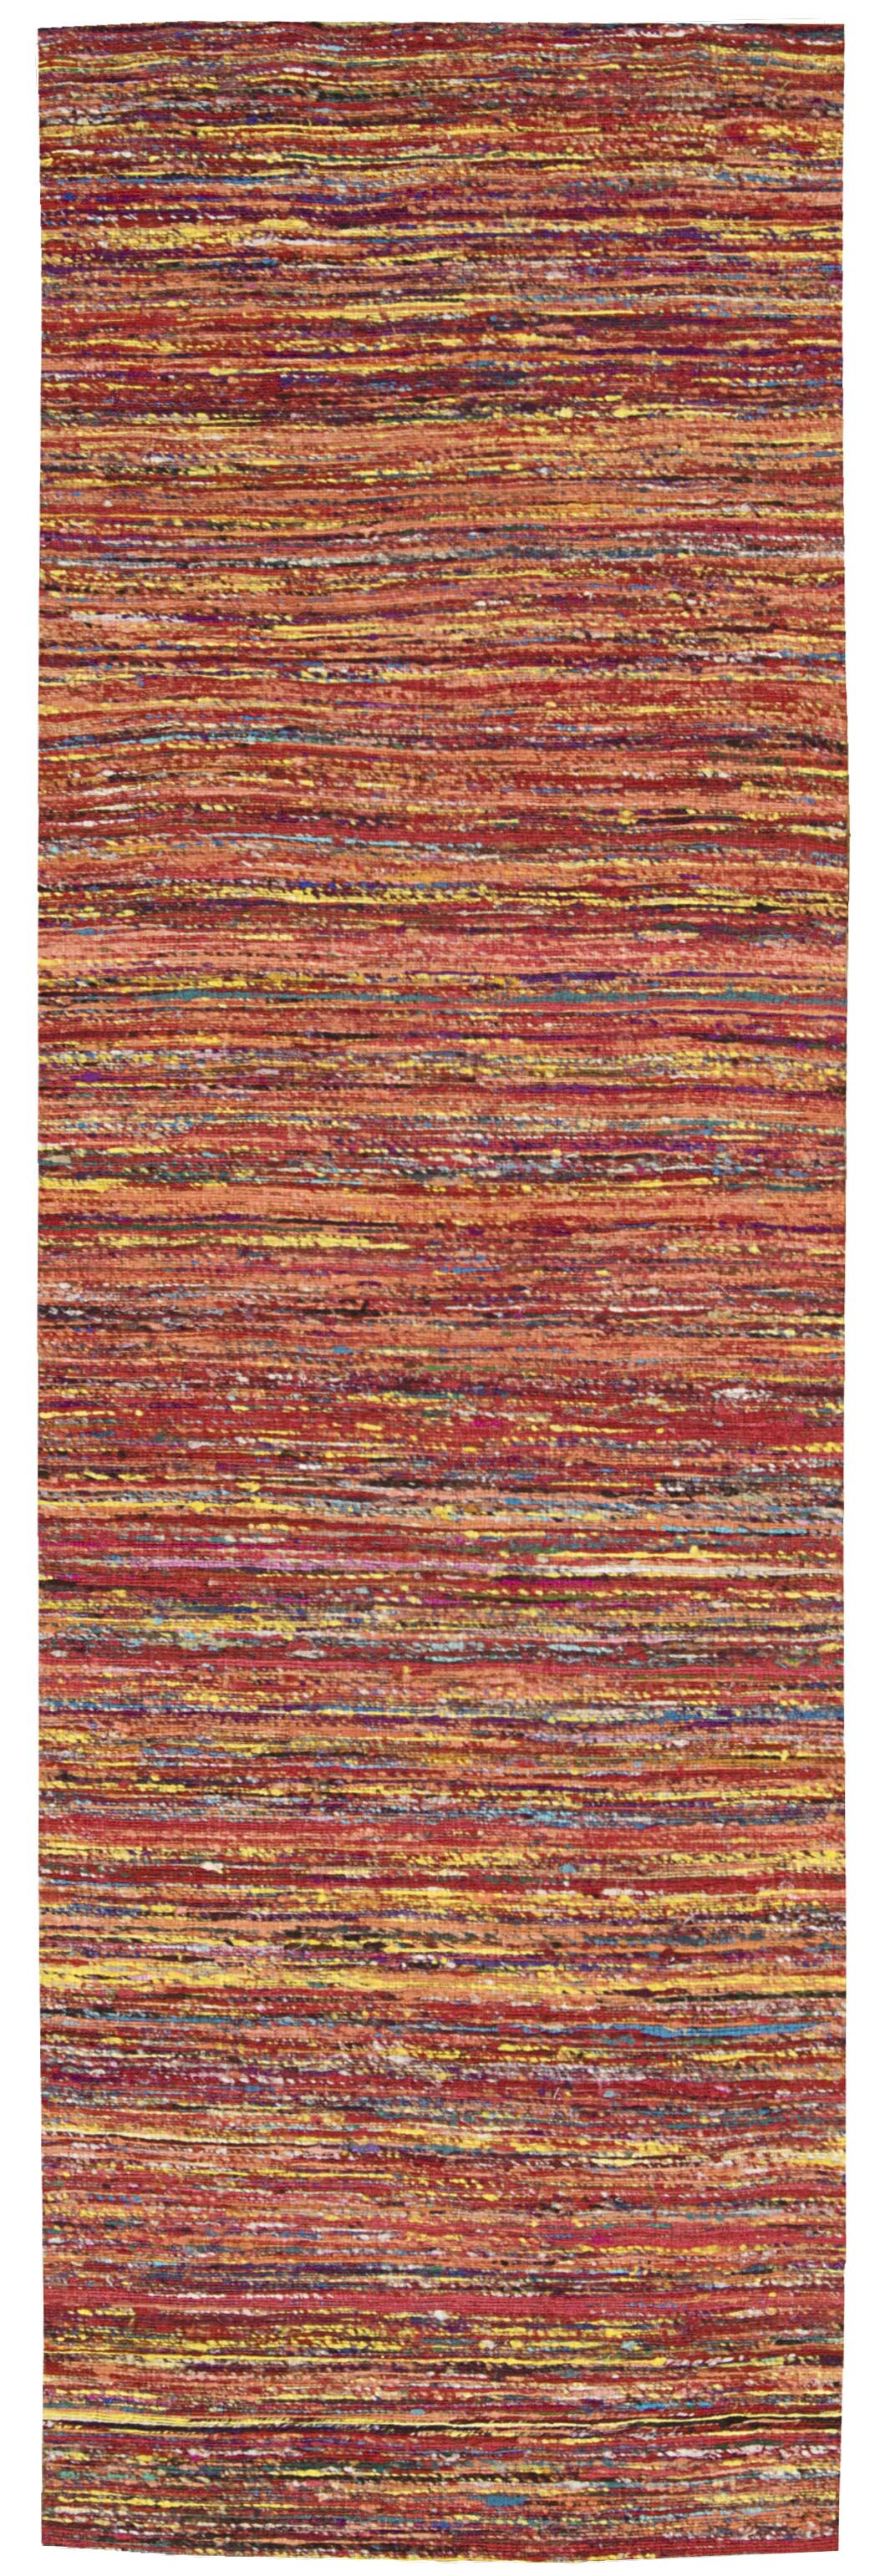 Zahra Hand-Woven Red Area Rug Rug Size: Runner 2'3